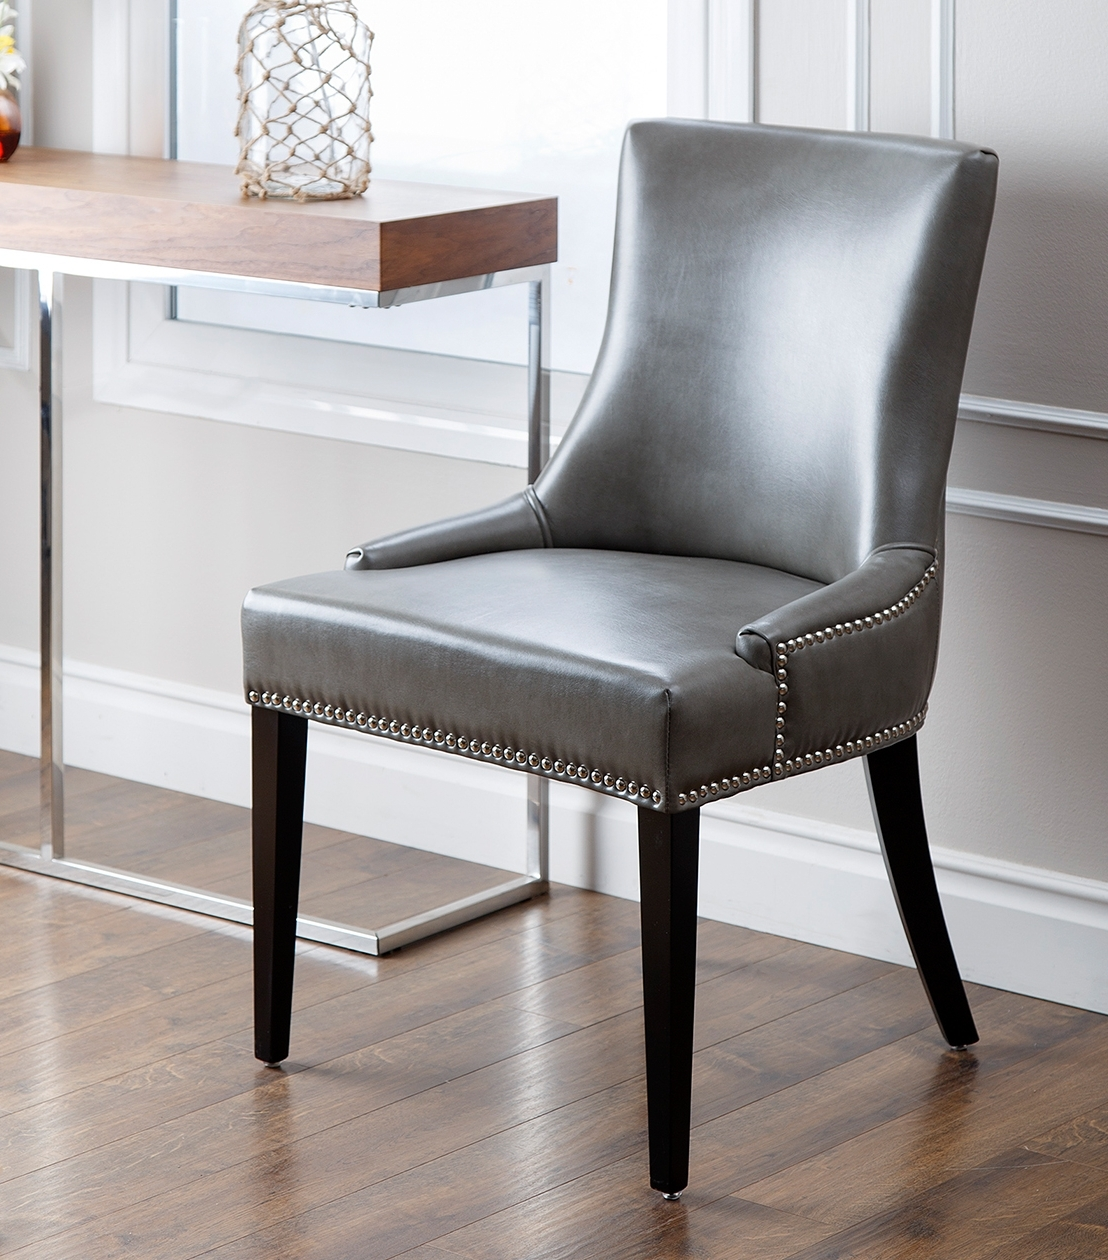 Real Leather Dining Chairs Inside Fashionable Grey Leather Dining Chairs For Furnishing The Dining Room – Home (View 18 of 25)